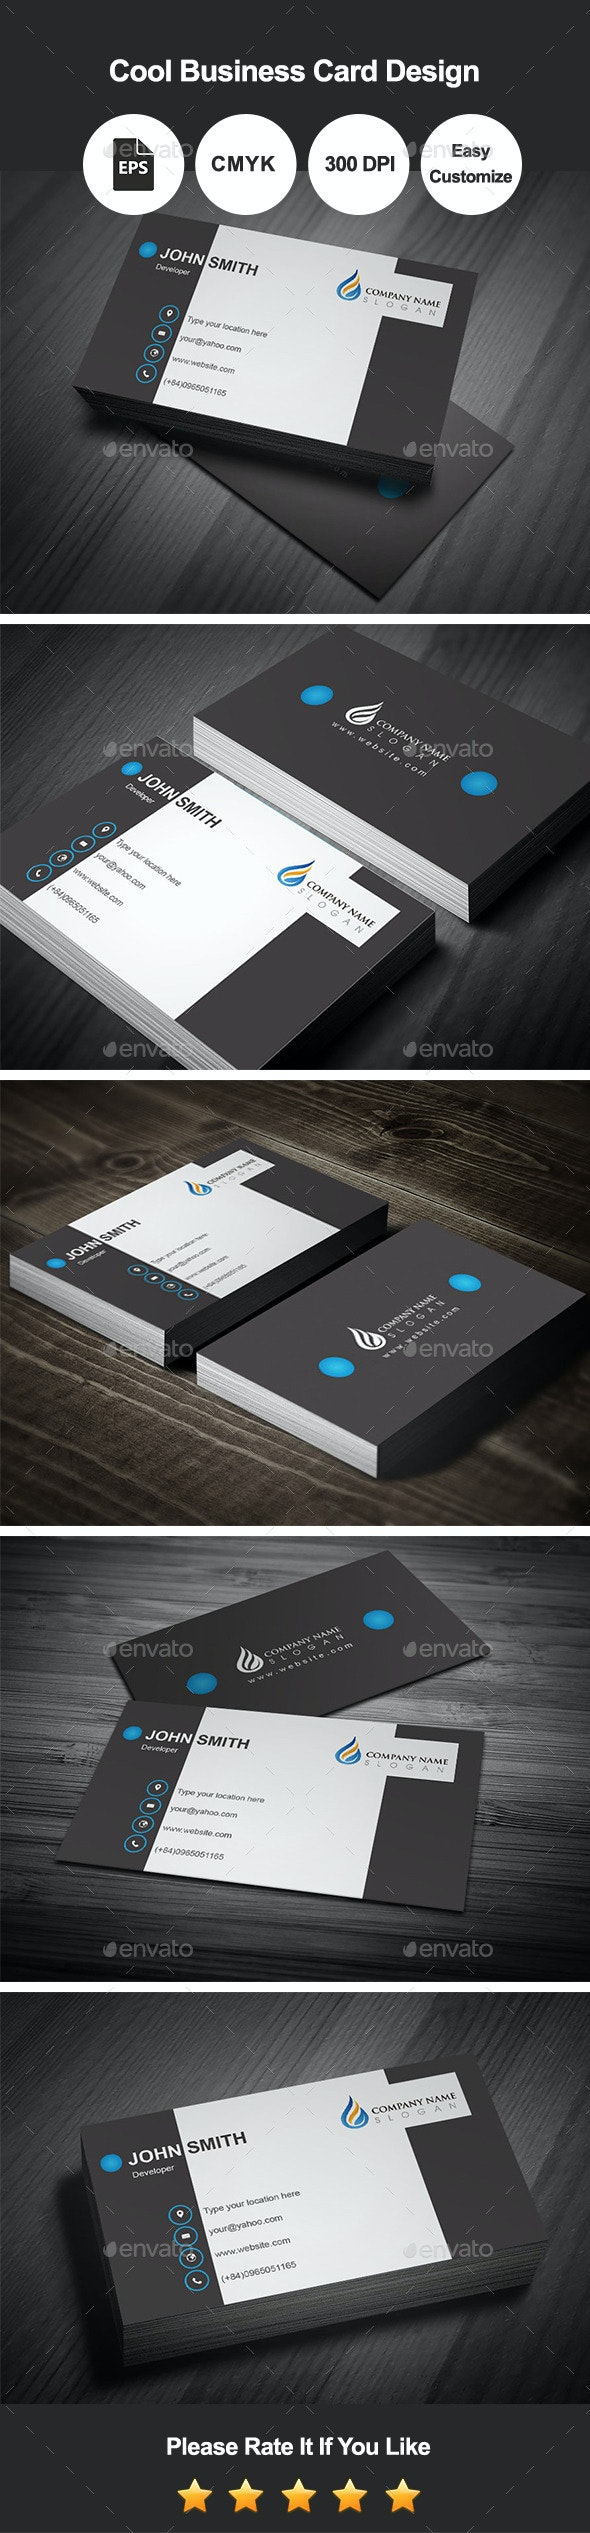 Cool Business Card Design - Corporate Business Cards